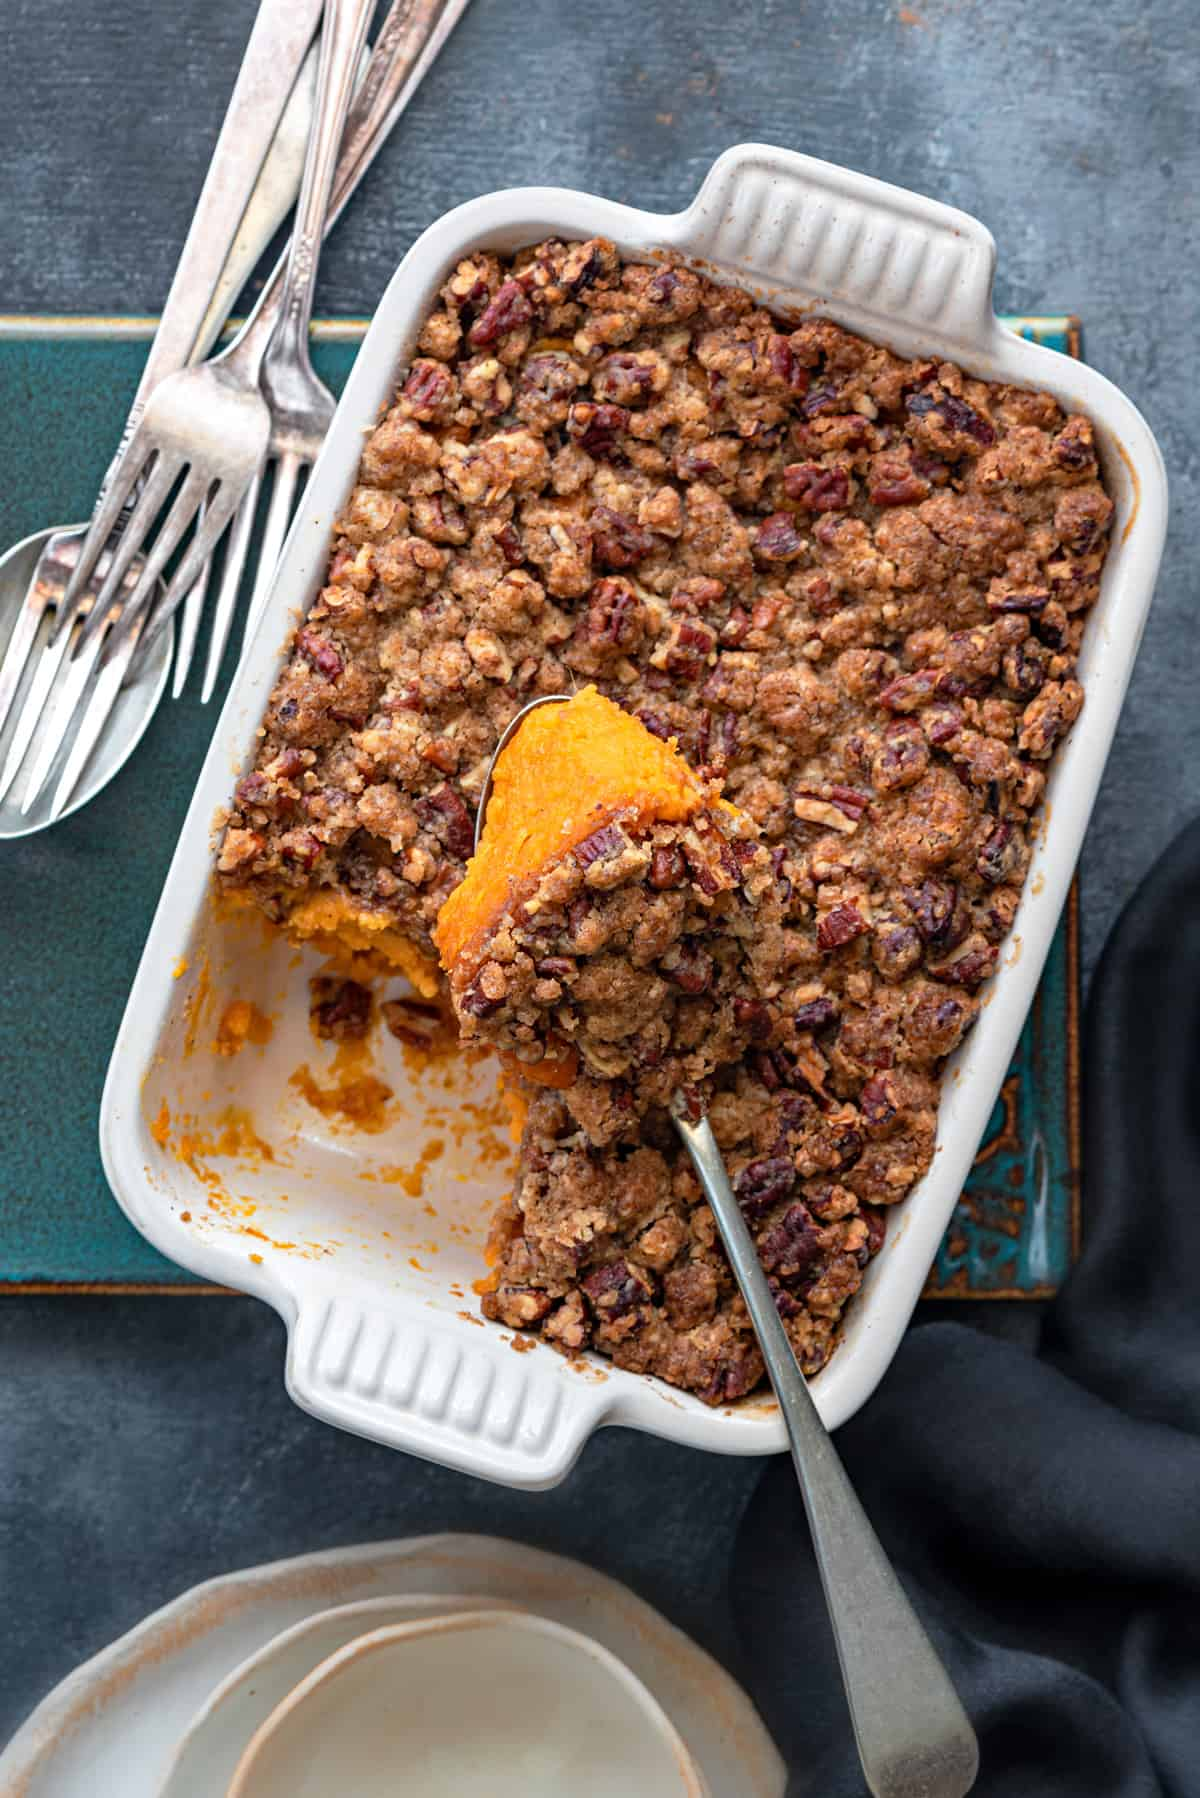 Overhead shot of a white casserole dish with scooped sweet potato casserole serving on spoon.